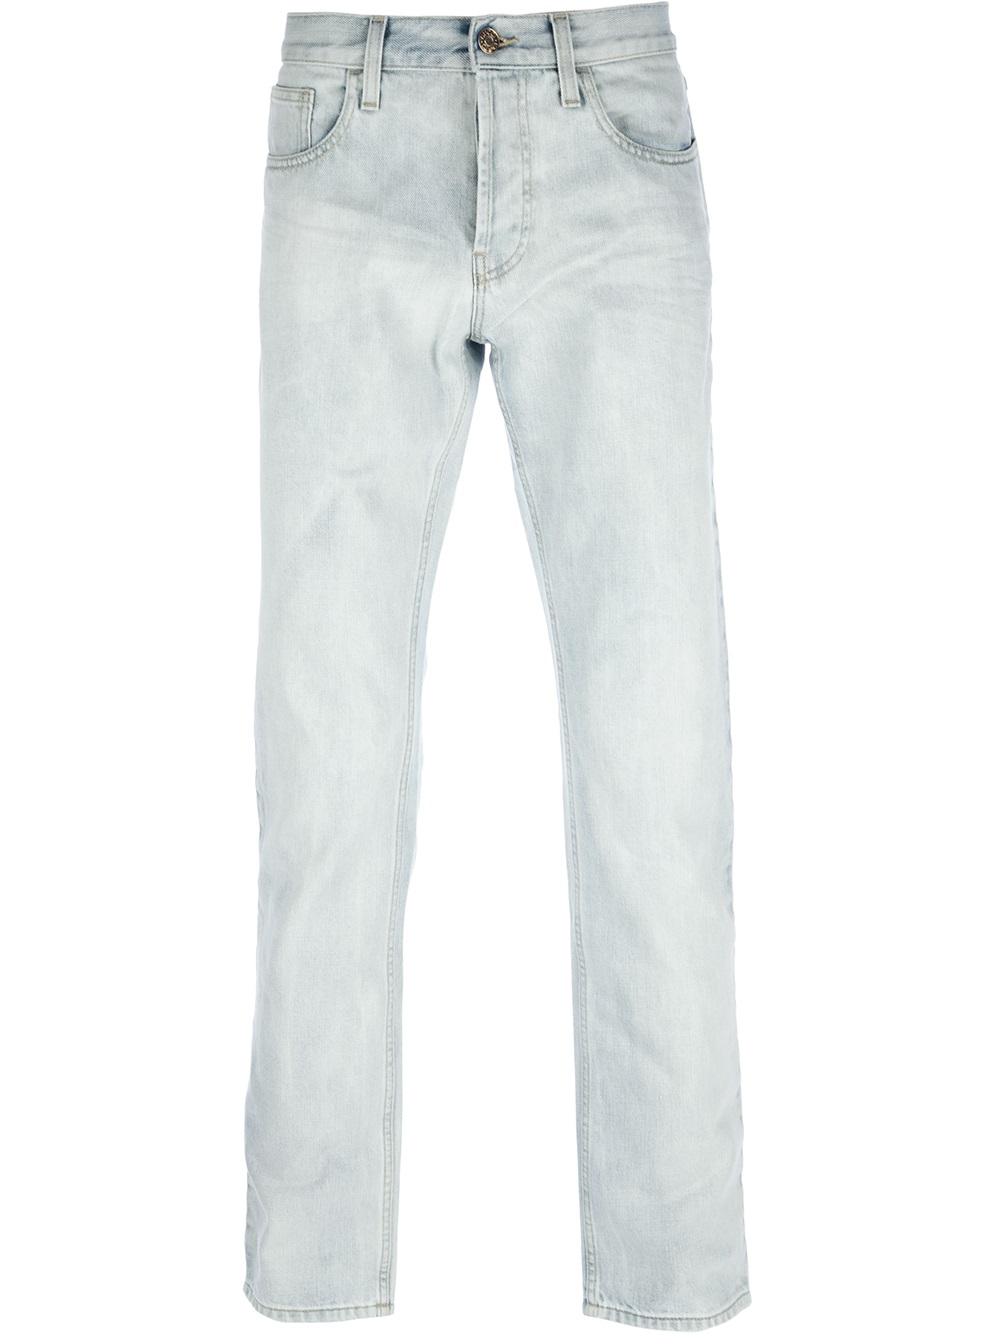 Lyst Gucci Stone Washed Jeans In Blue For Men